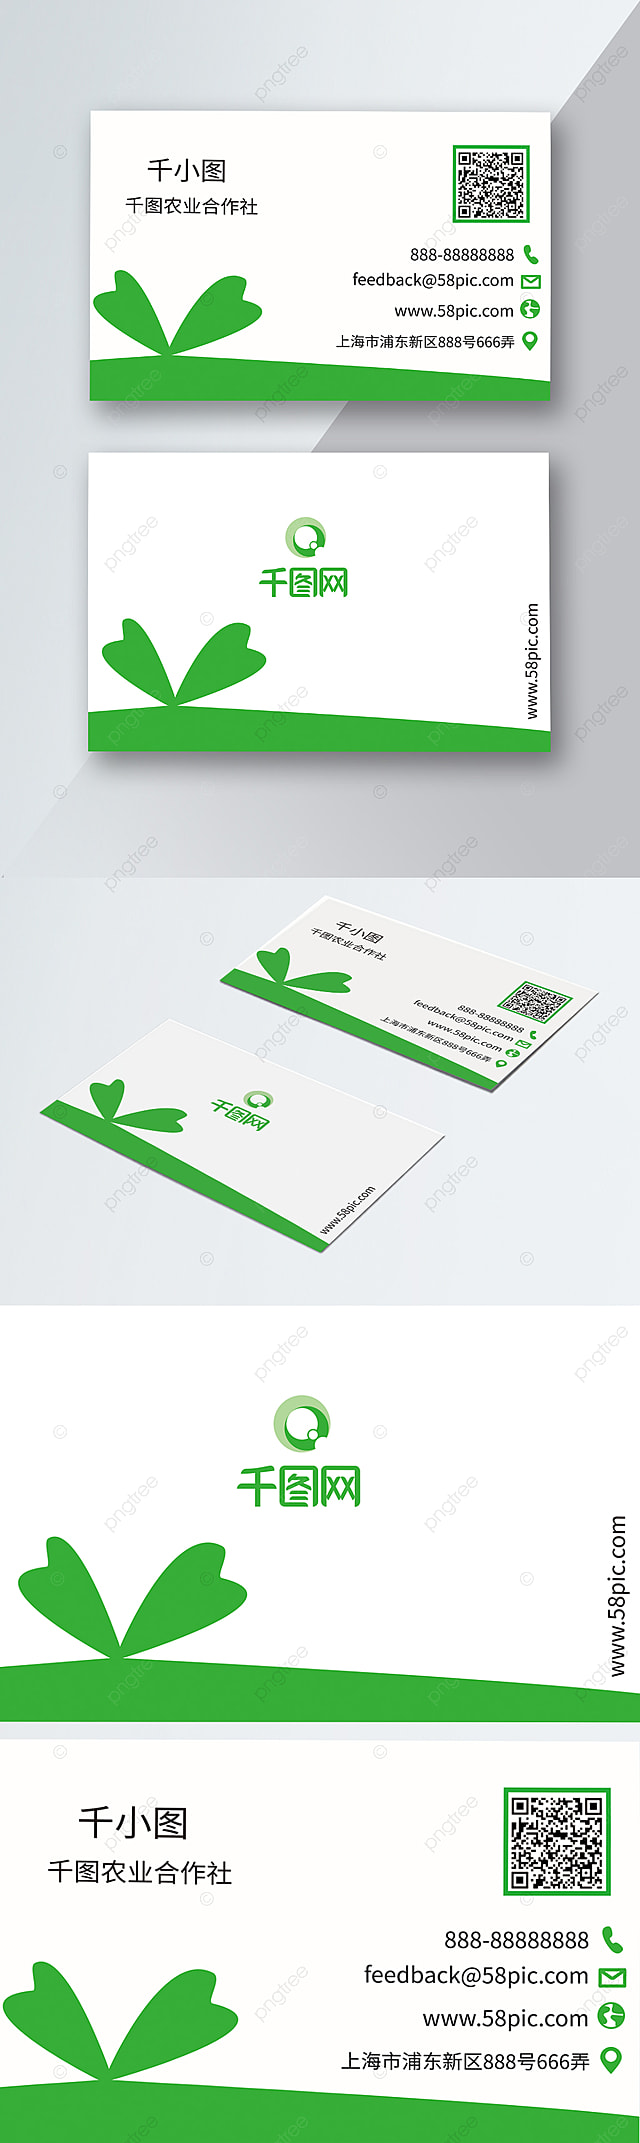 Agriculture Business Card Templates Free Download Free Business Card Templates Business Card Templates Download Card Templates